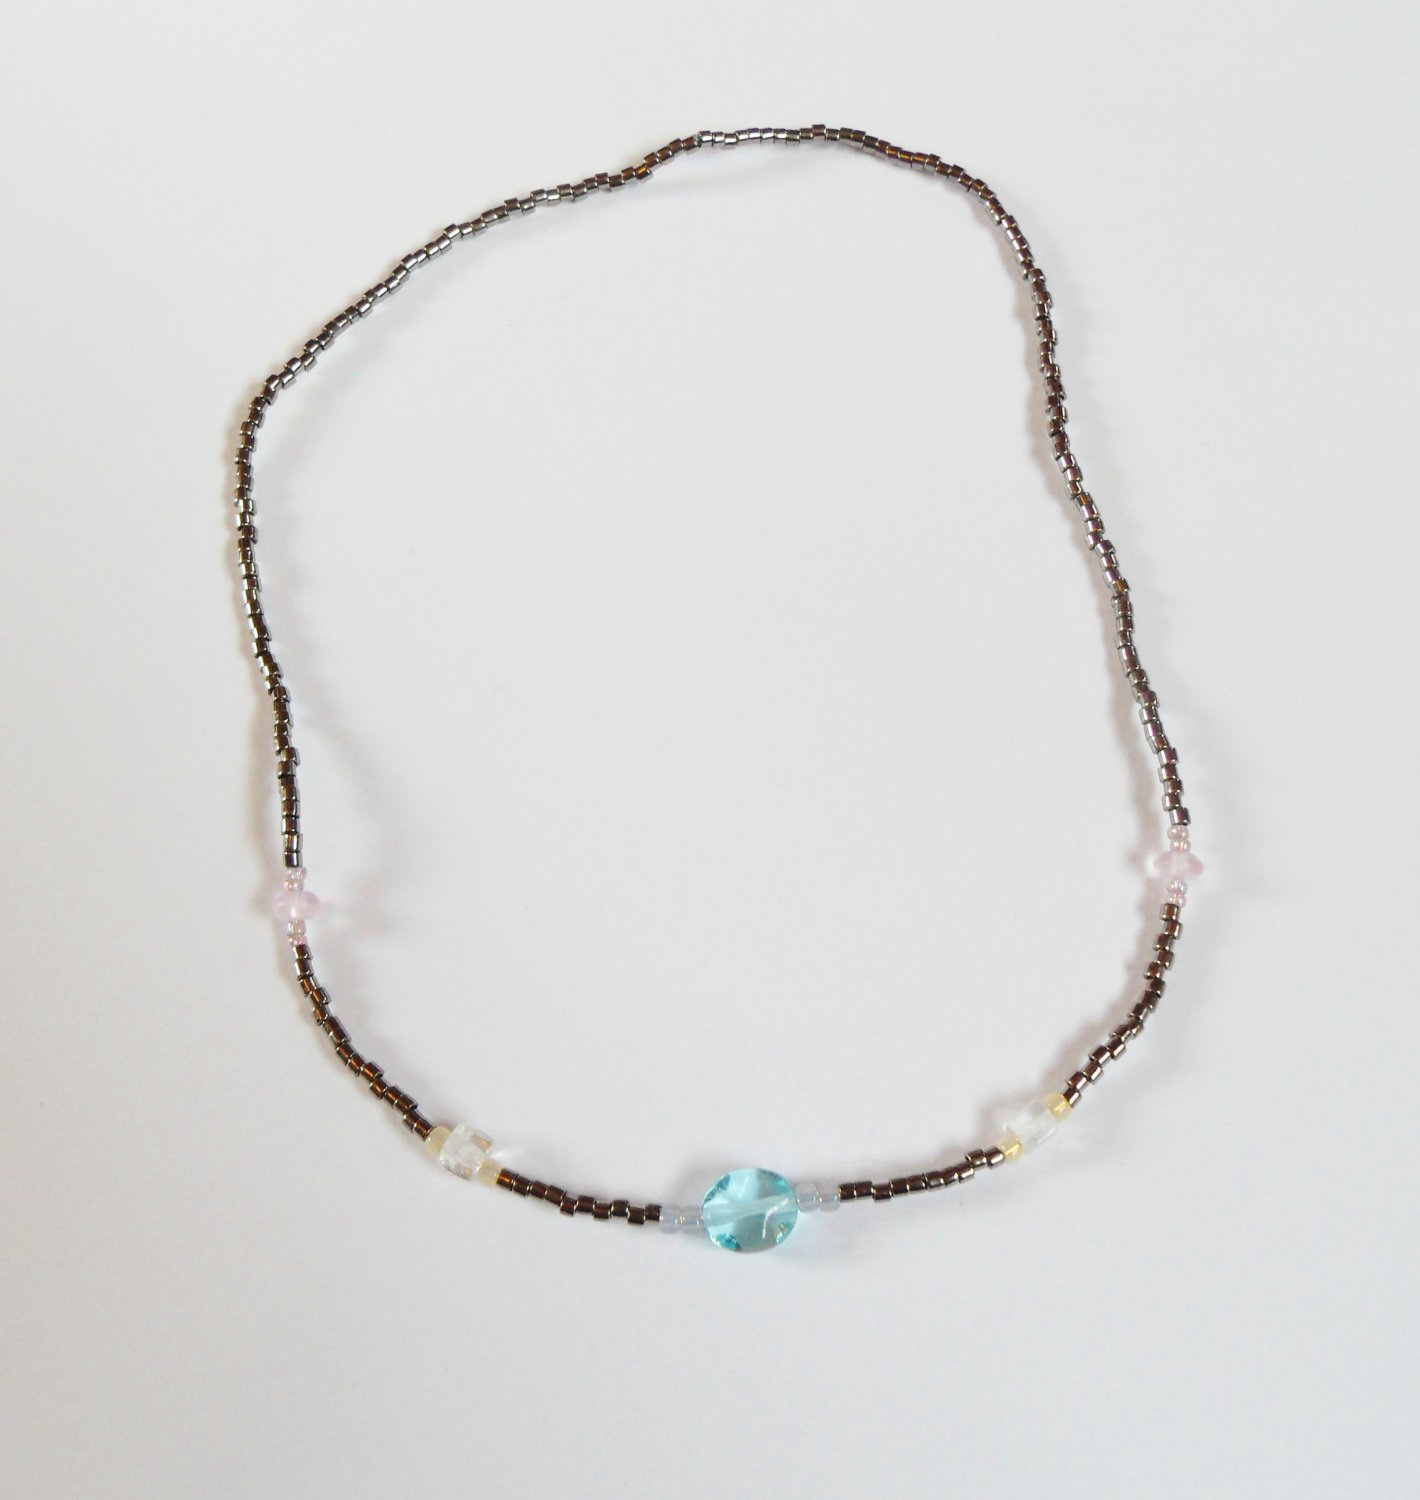 Surfer style girls' necklace